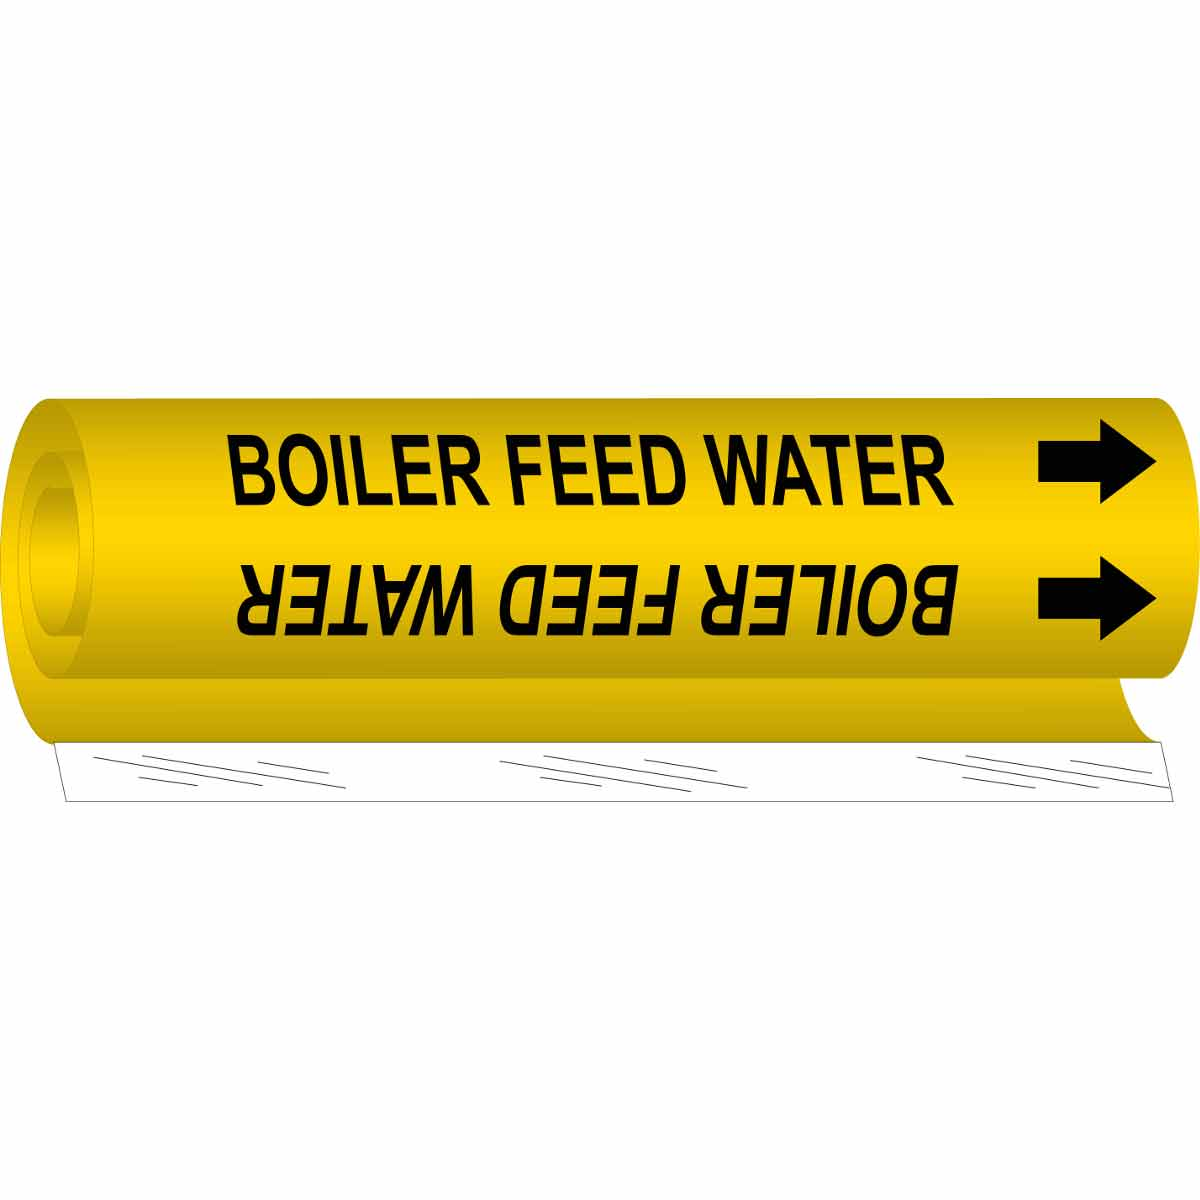 Wrap Around Pipe Marker Legend Boiler Feed Water Legend Boiler Feed Water Brady 5637-Ii High Performance